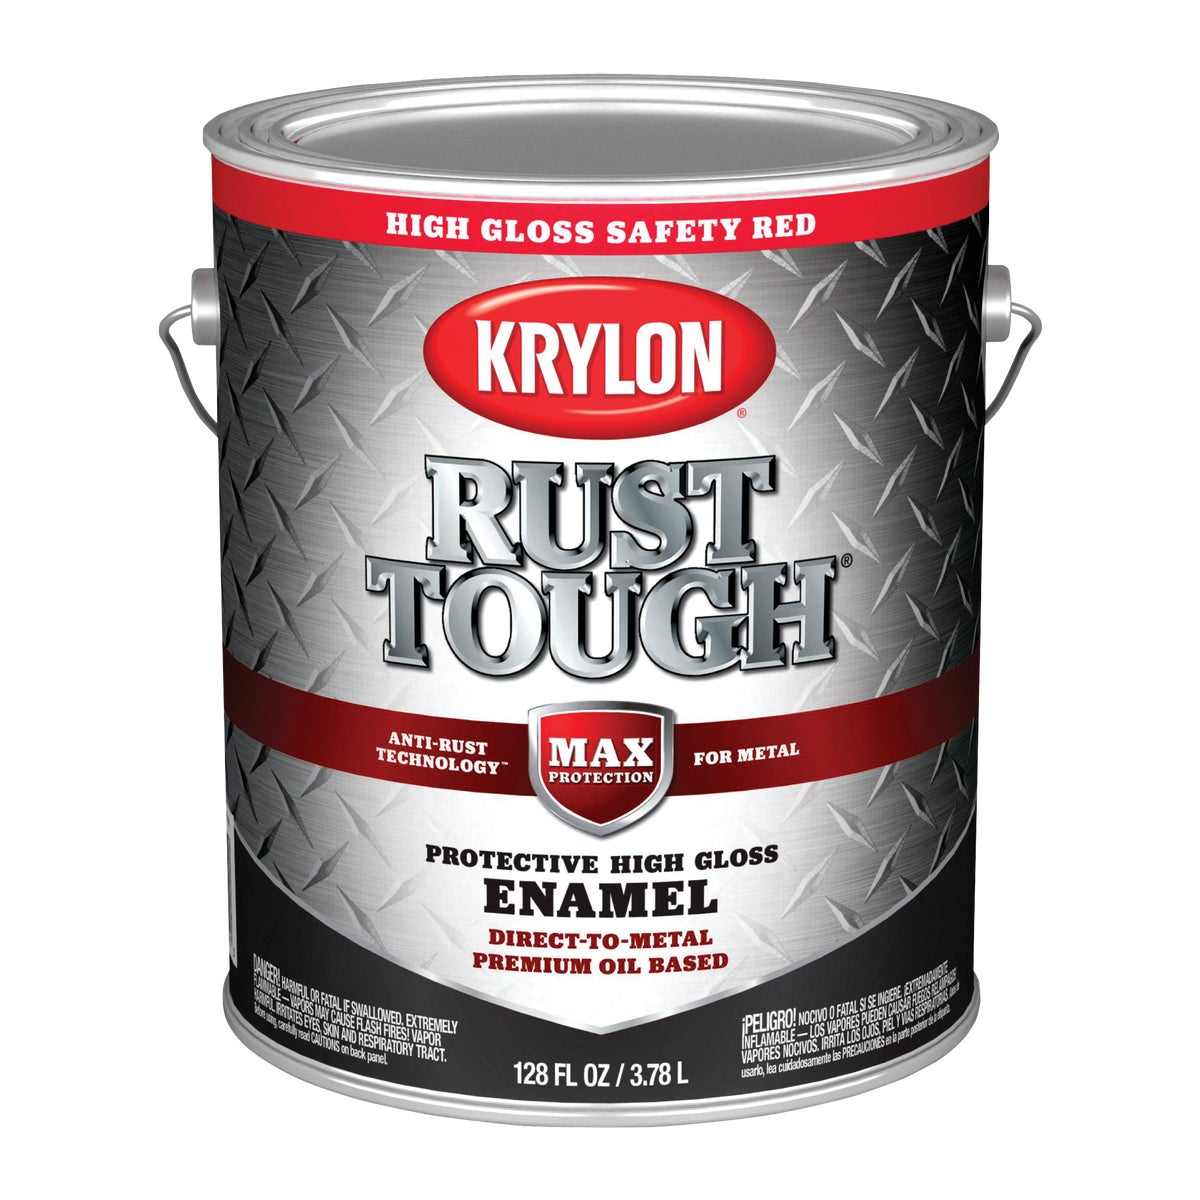 SAFETY RED RUST ENAMEL - 044.0021827.007 by Valspar Corp